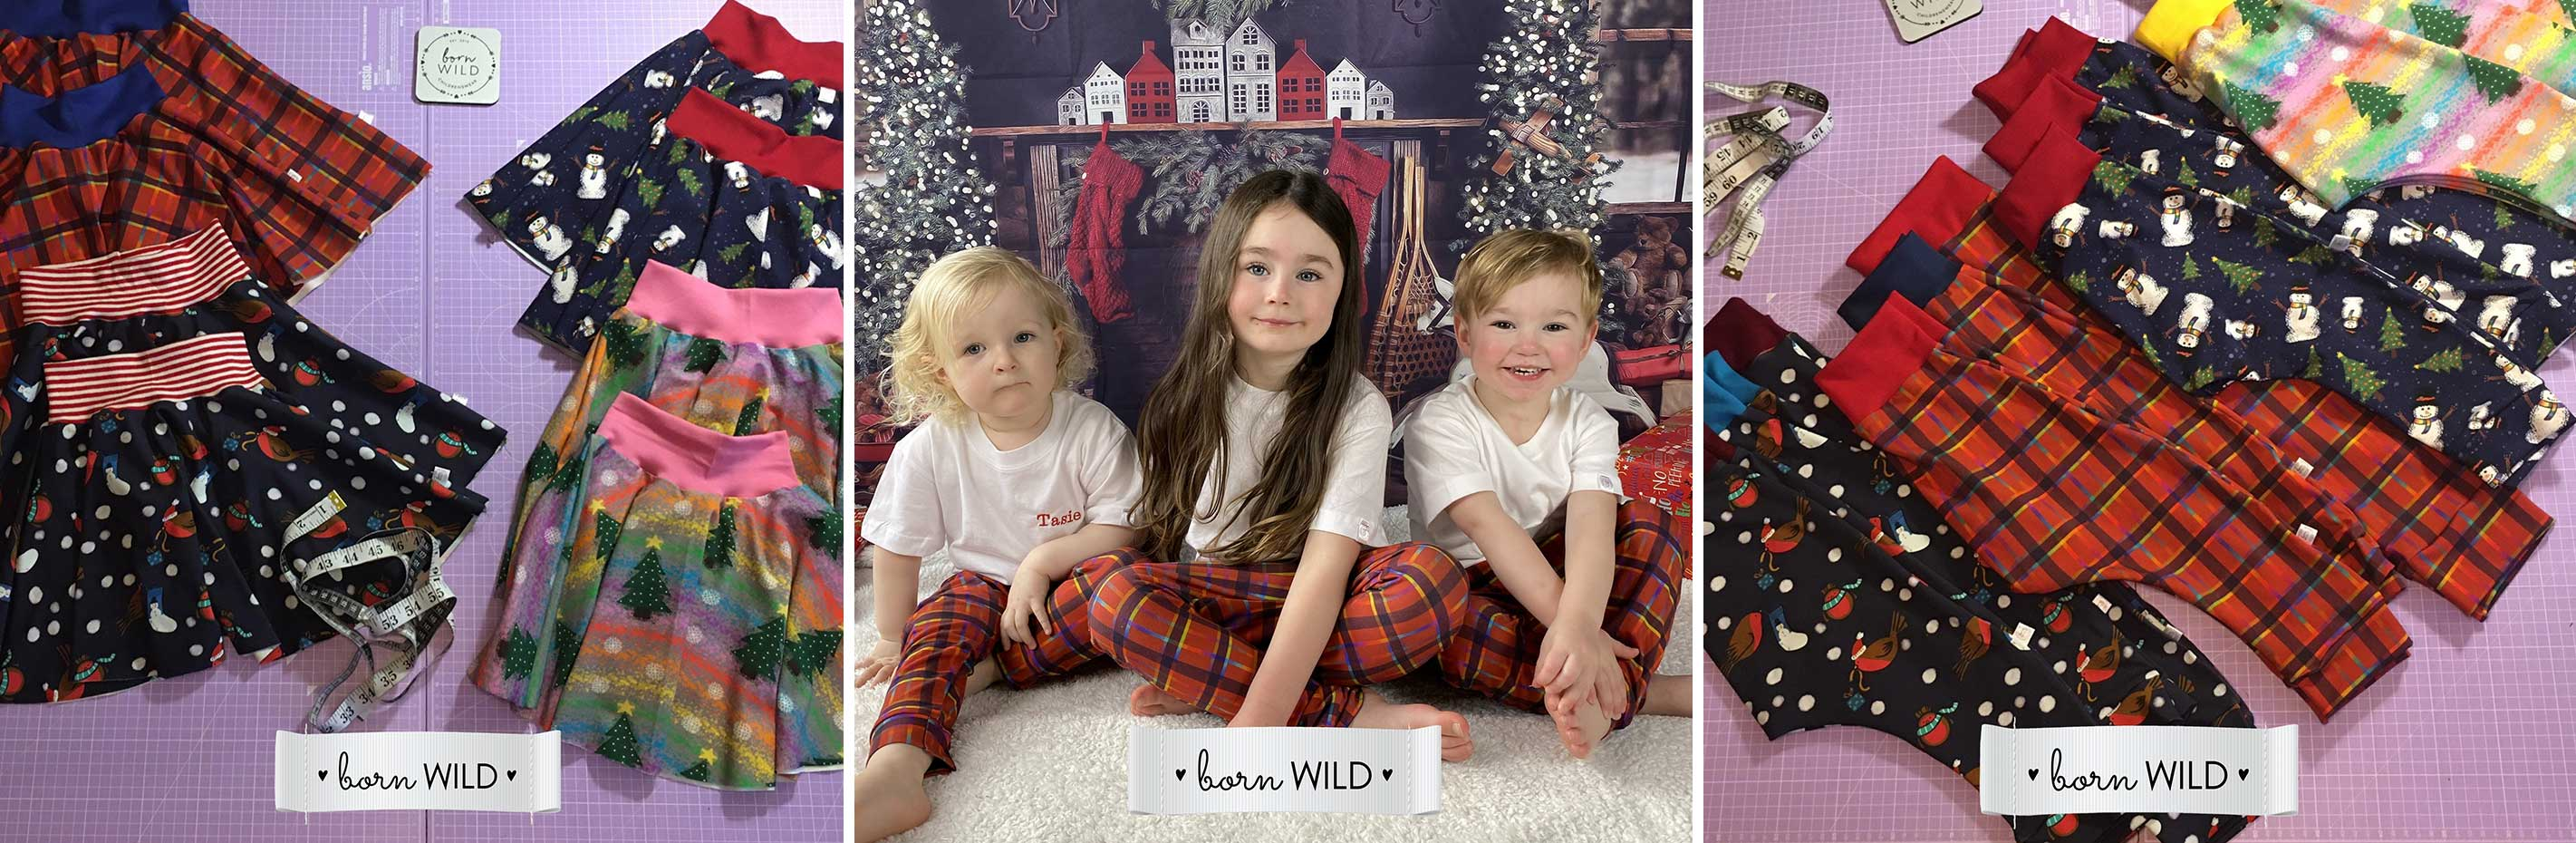 HLN meets: Lisa Willis at Born Wild Children's Clothing